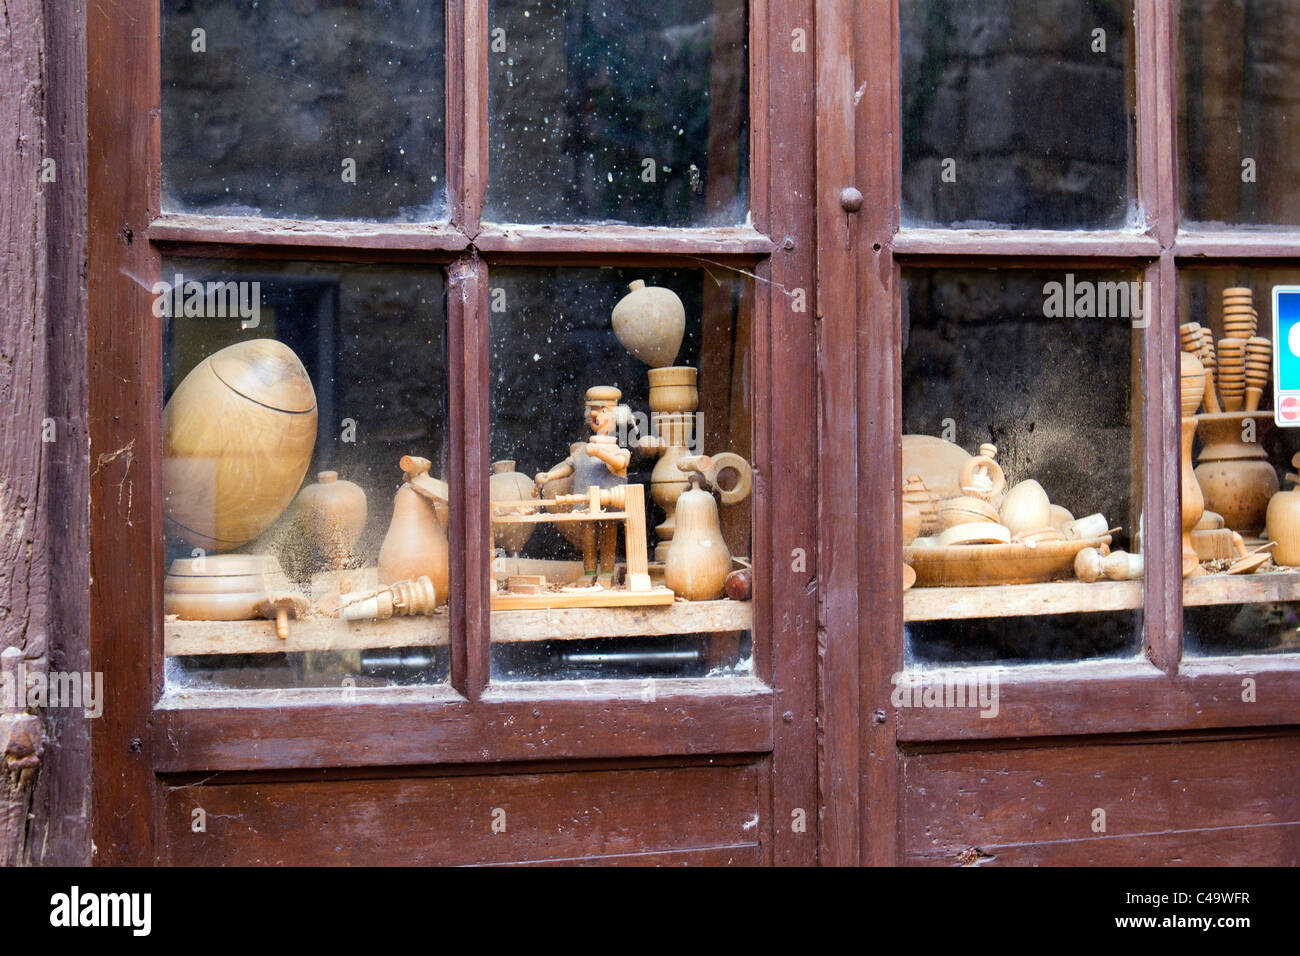 The dusty window of a craftsmans workshop in the village of St Cirq Lapopie, Lot, France, Europe - Stock Image